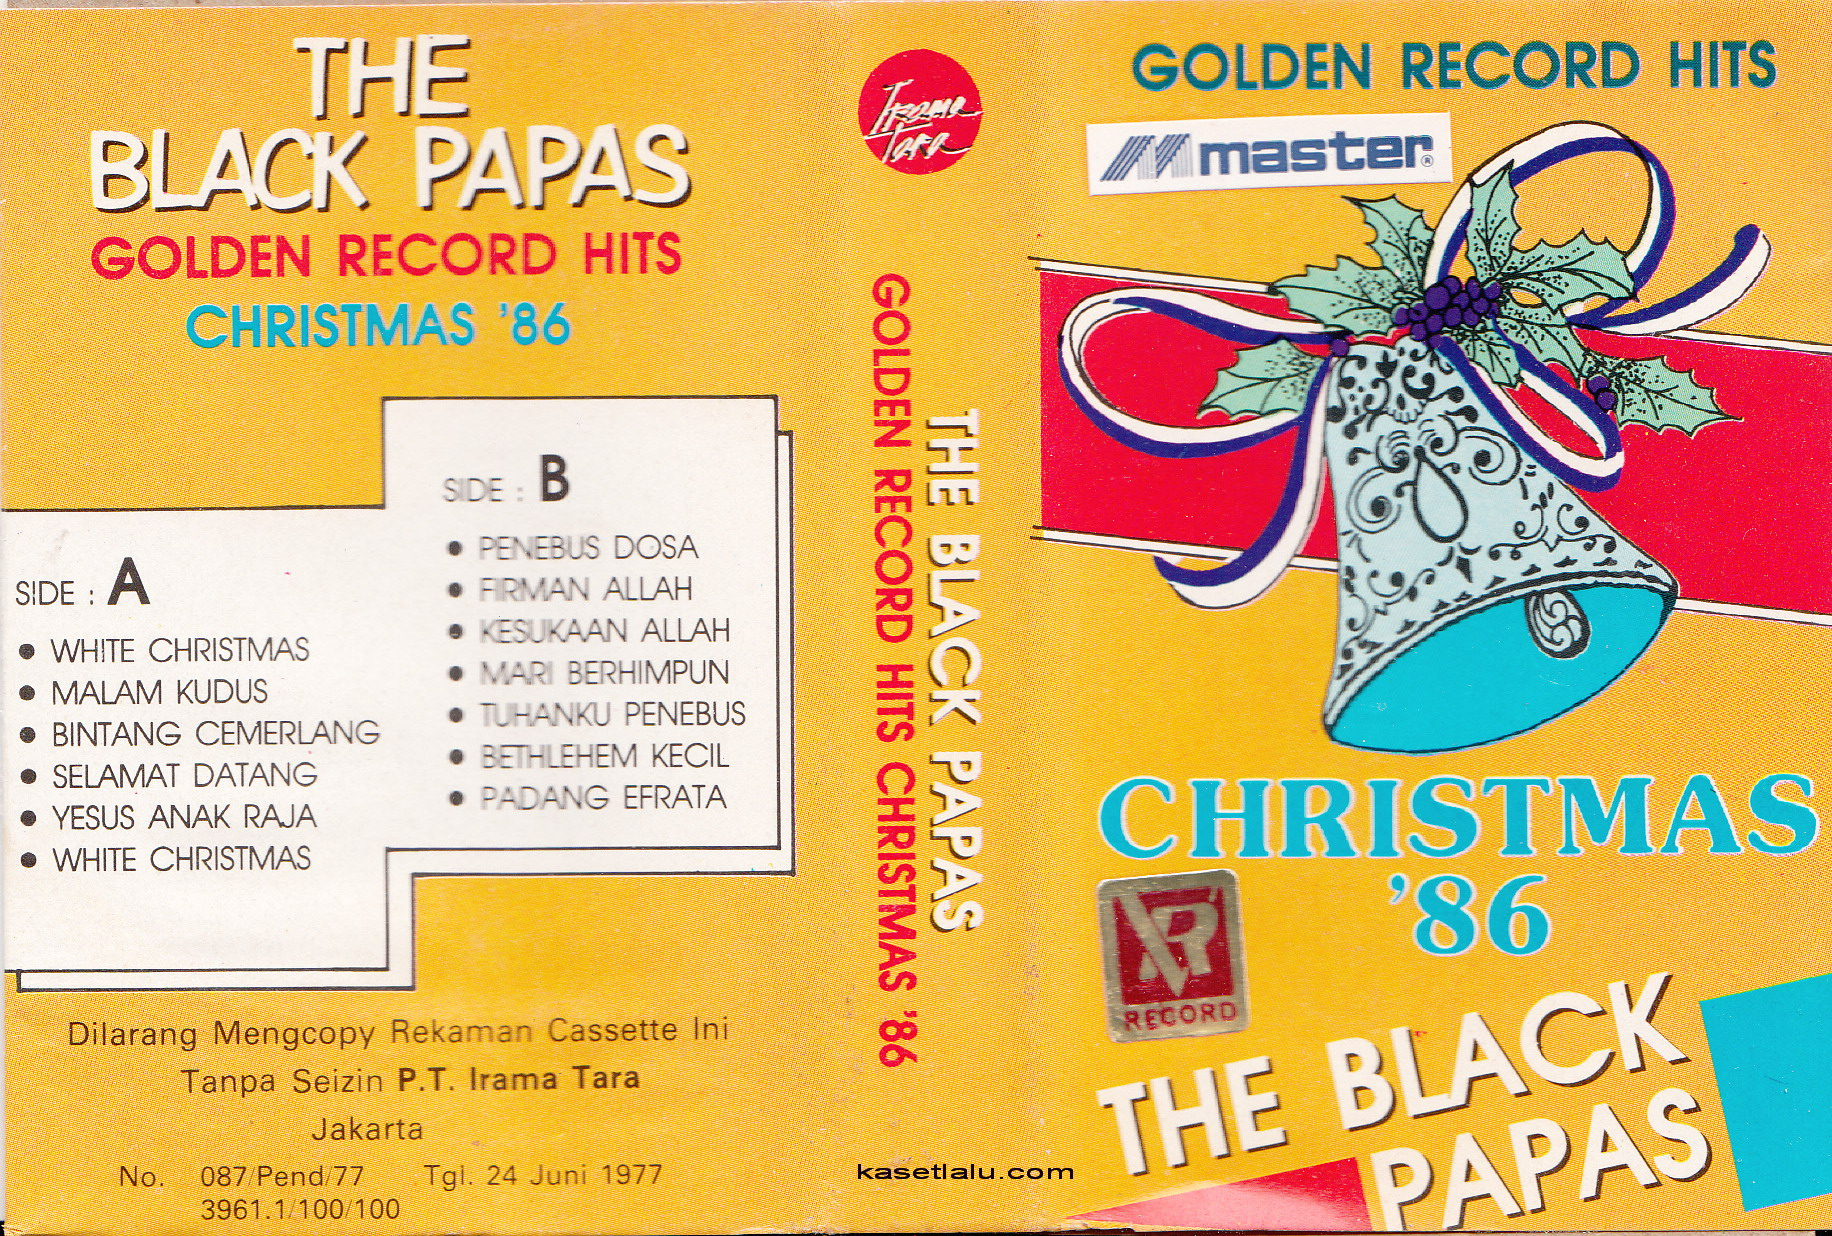 The Black Papas - Golden Record Hits Christmas 86